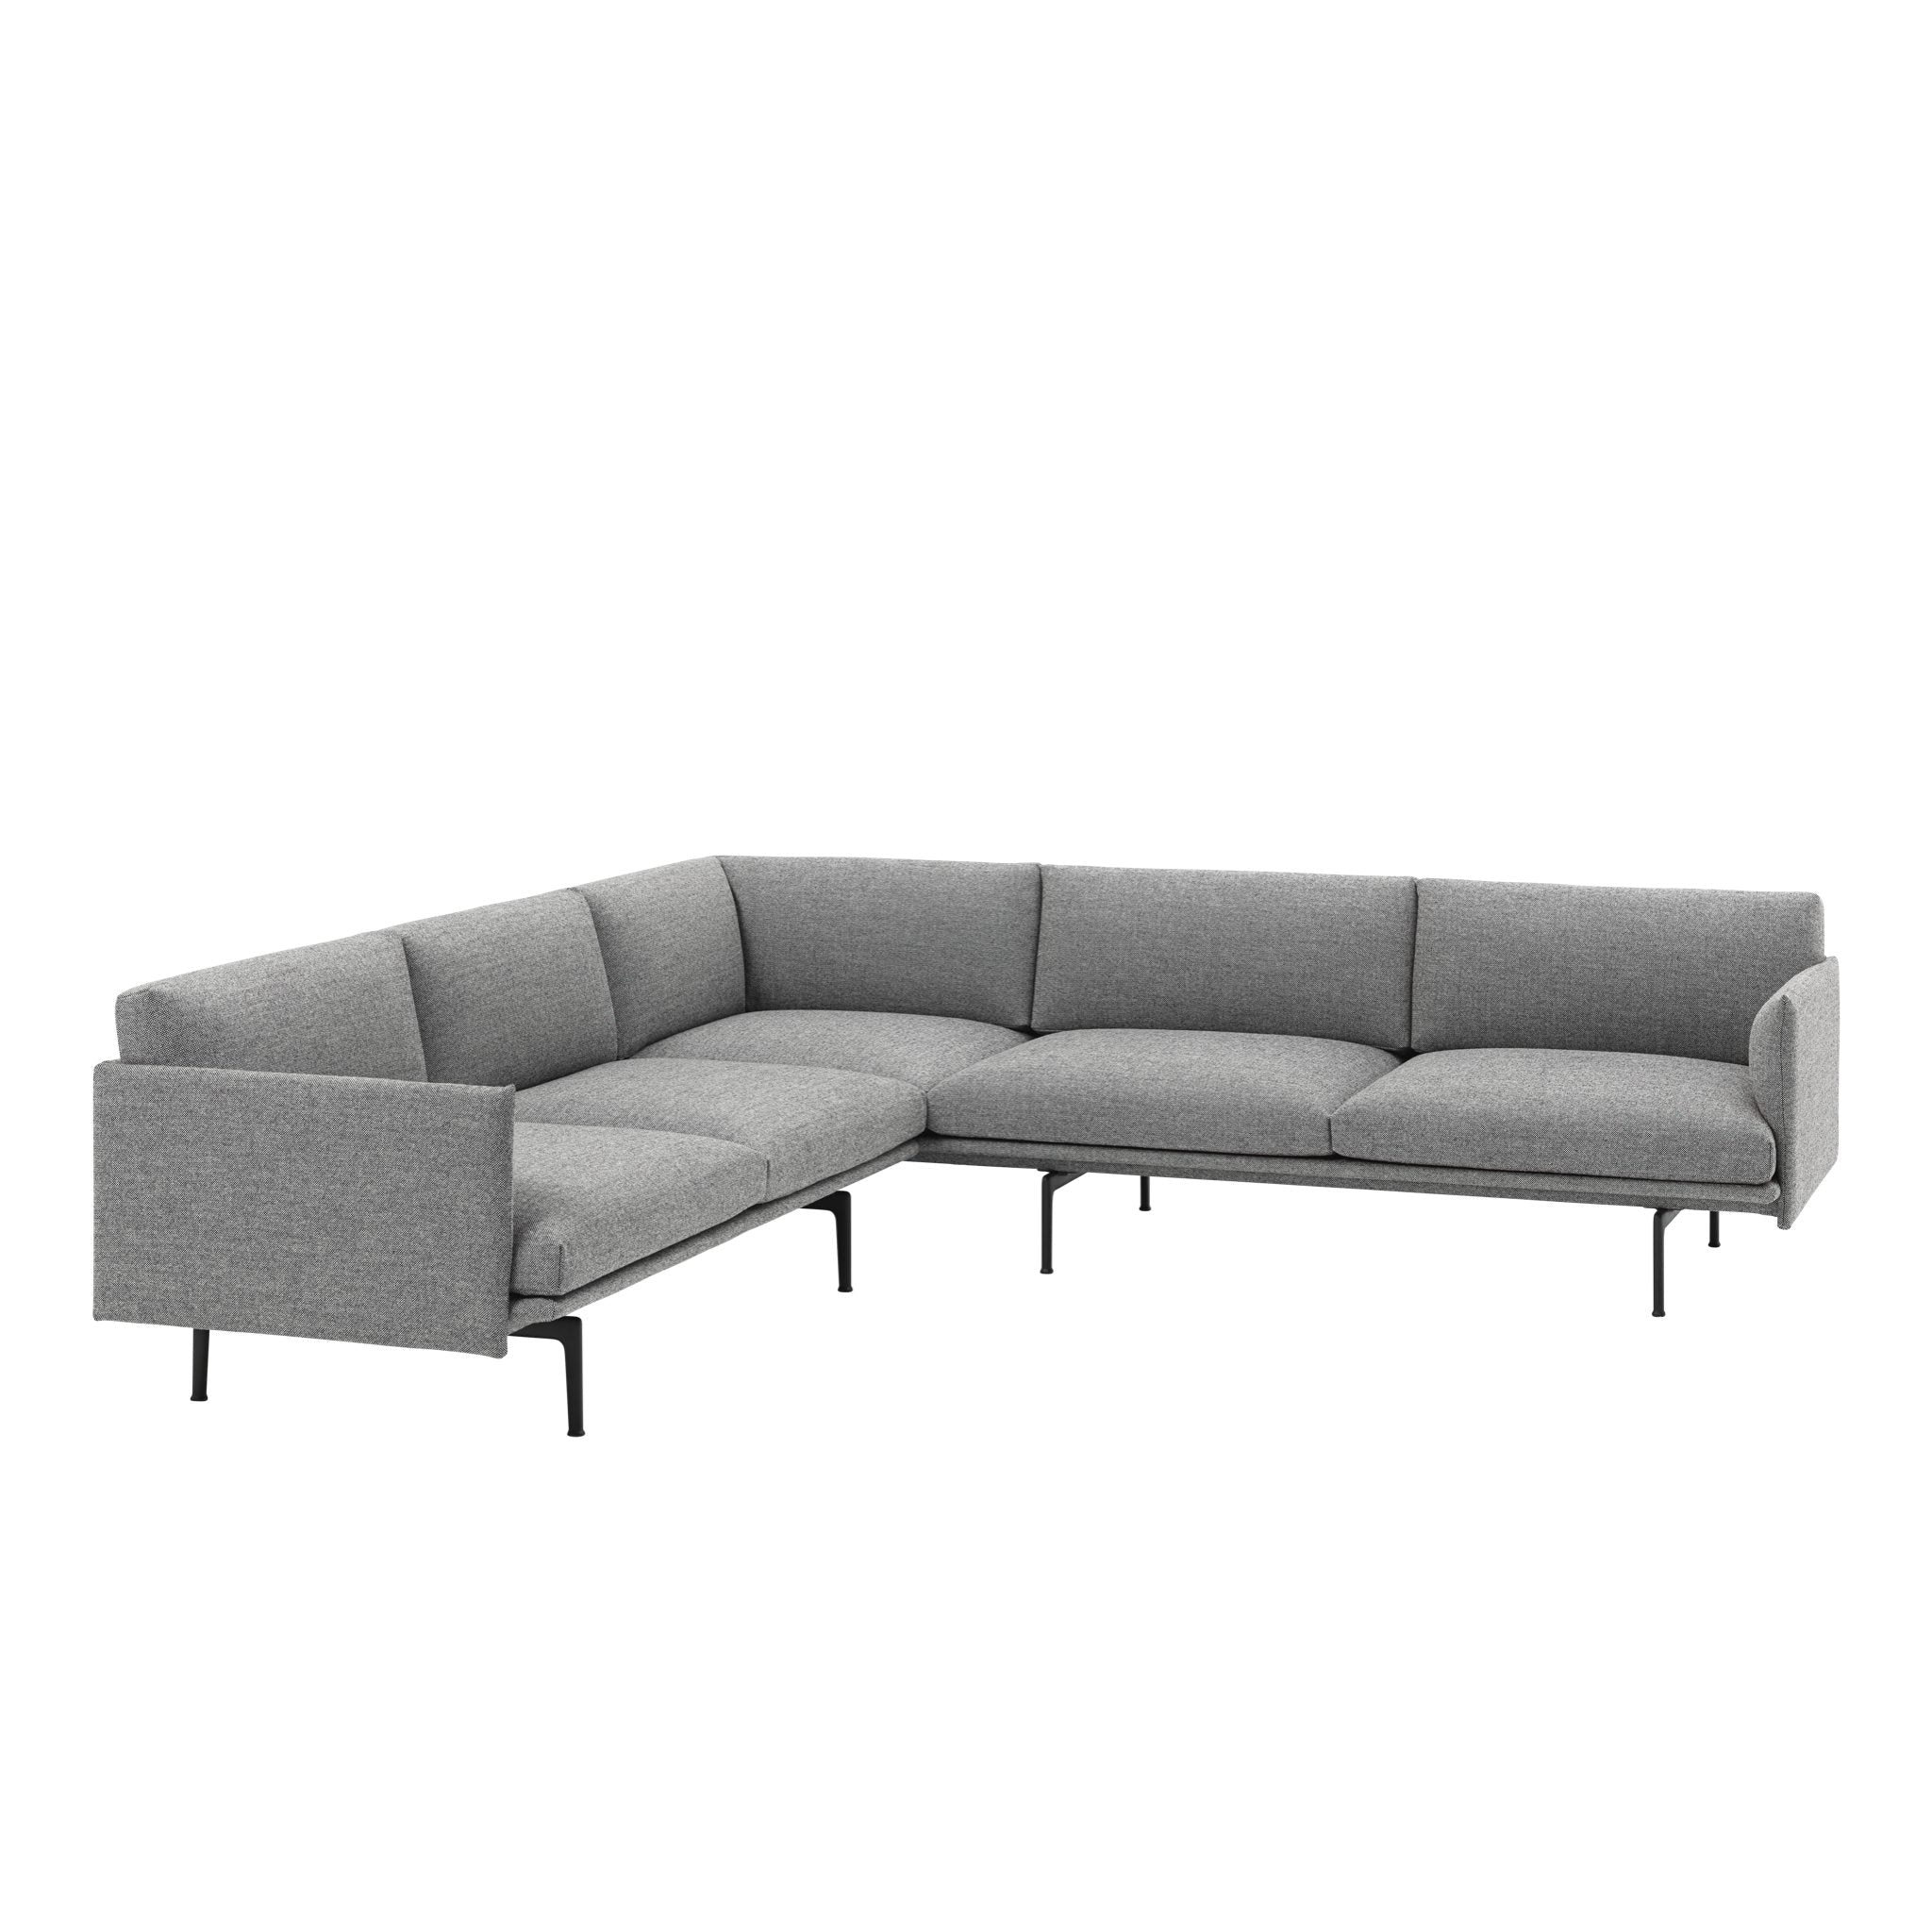 Outline Corner Sofa by Muuto